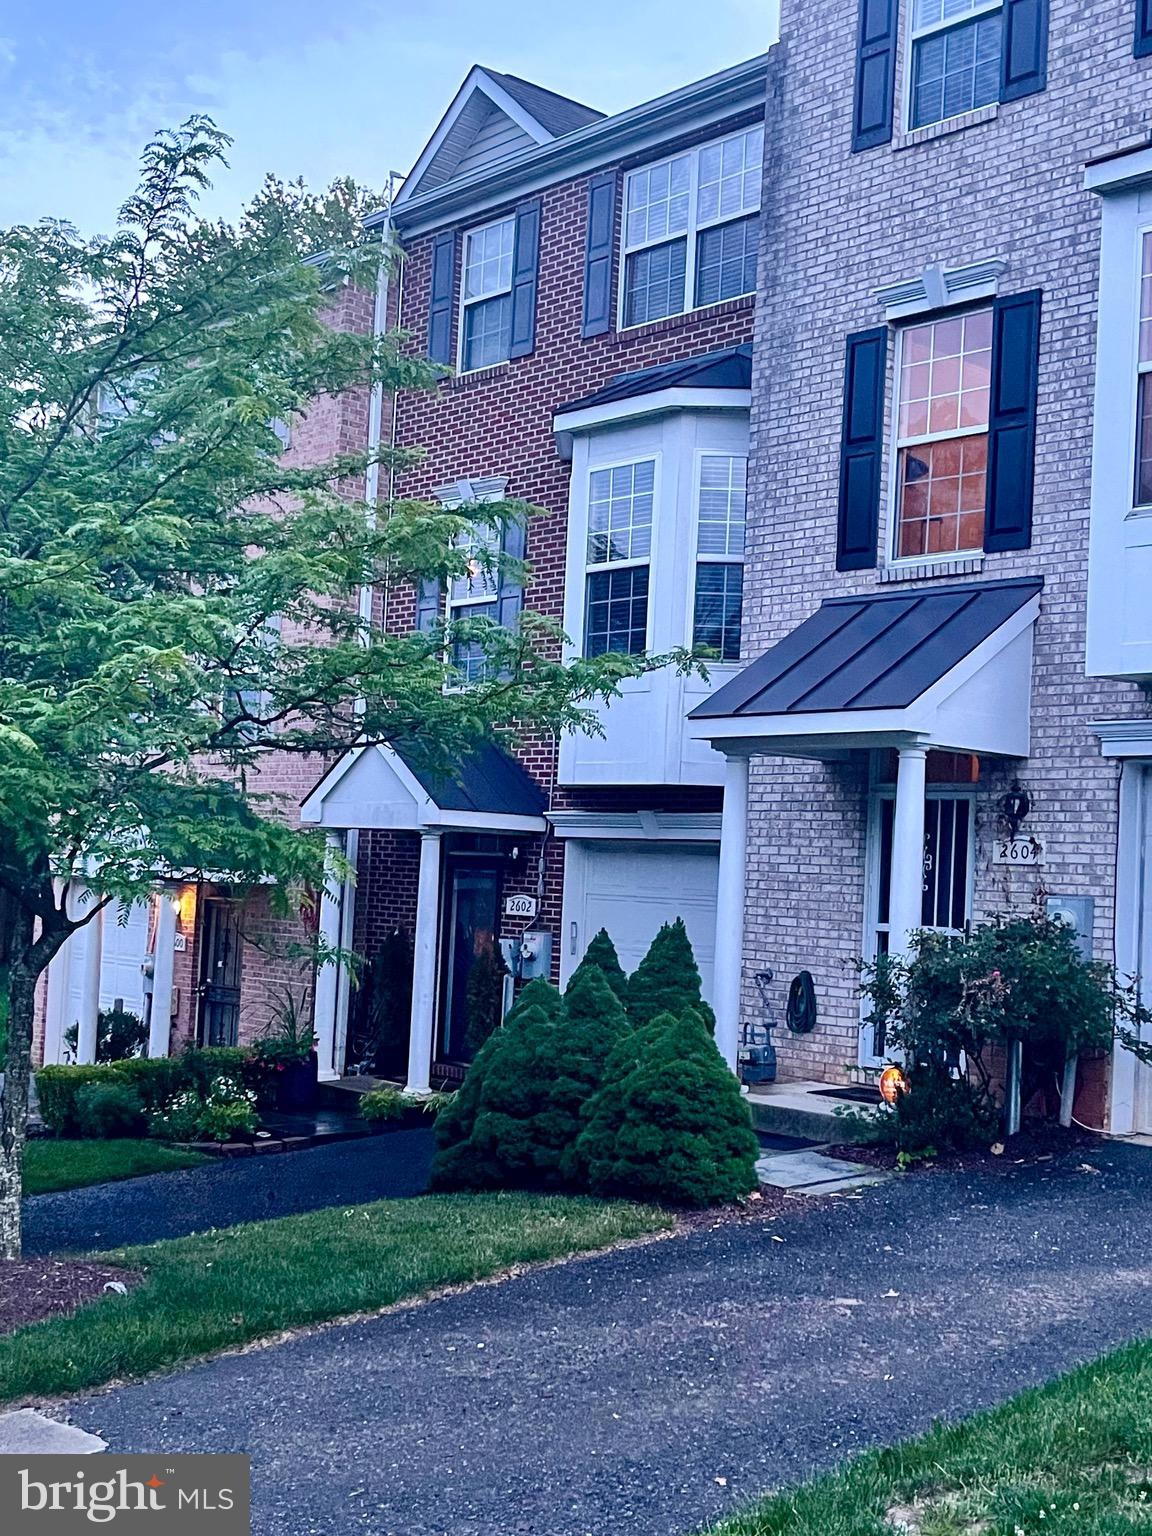 A MUST SEE beautiful brick townhome with a garage. This is a move-in ready home with all of the bell